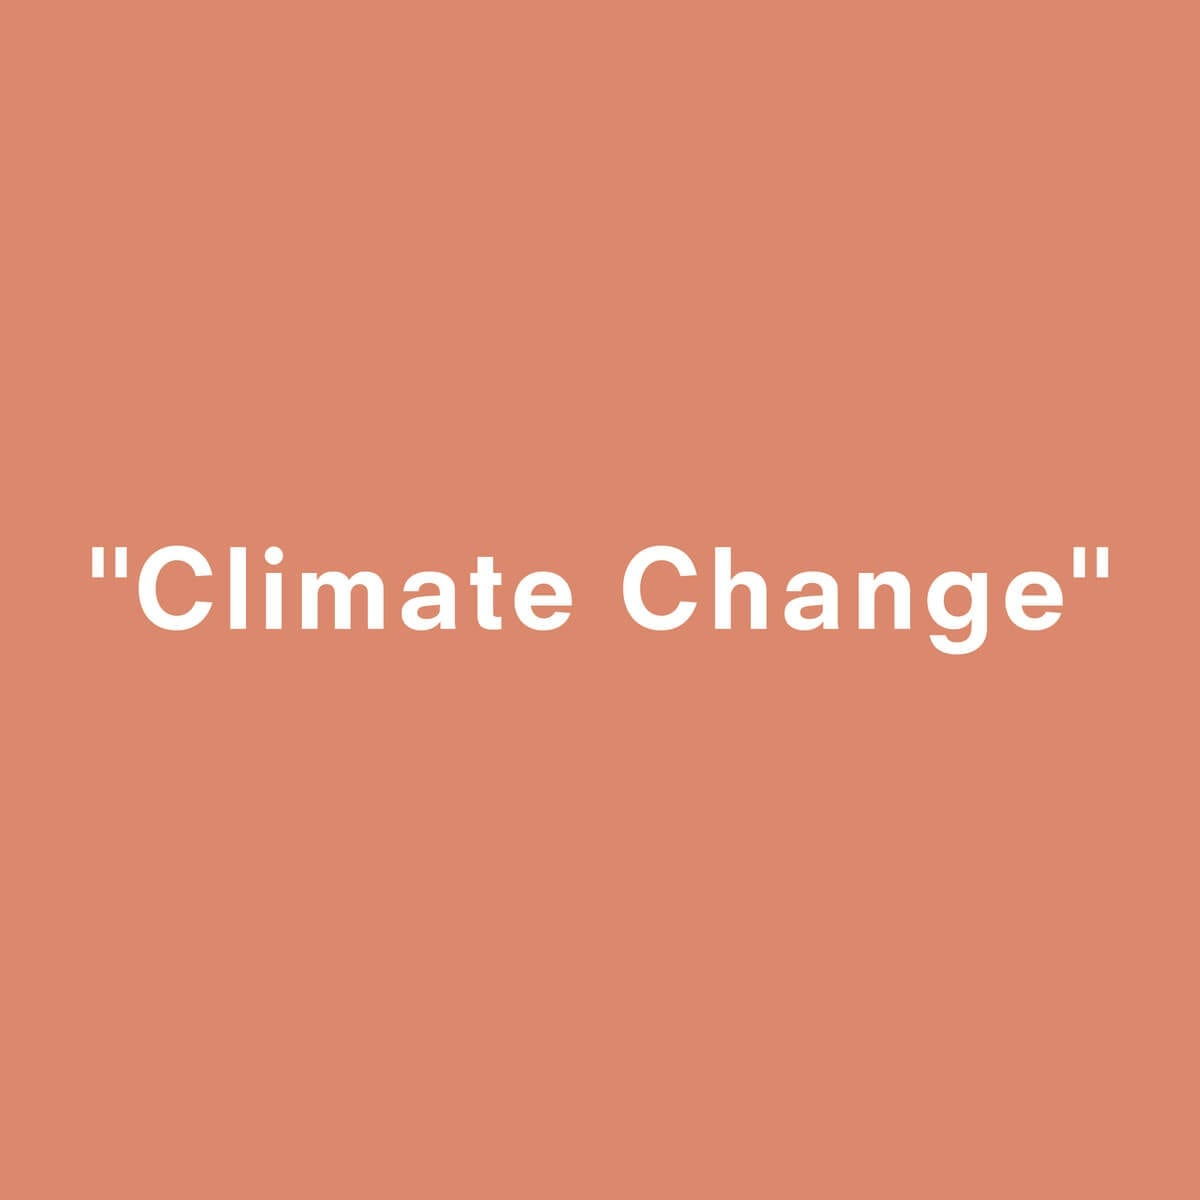 14 Climate Change Quotes That Will Inspire You